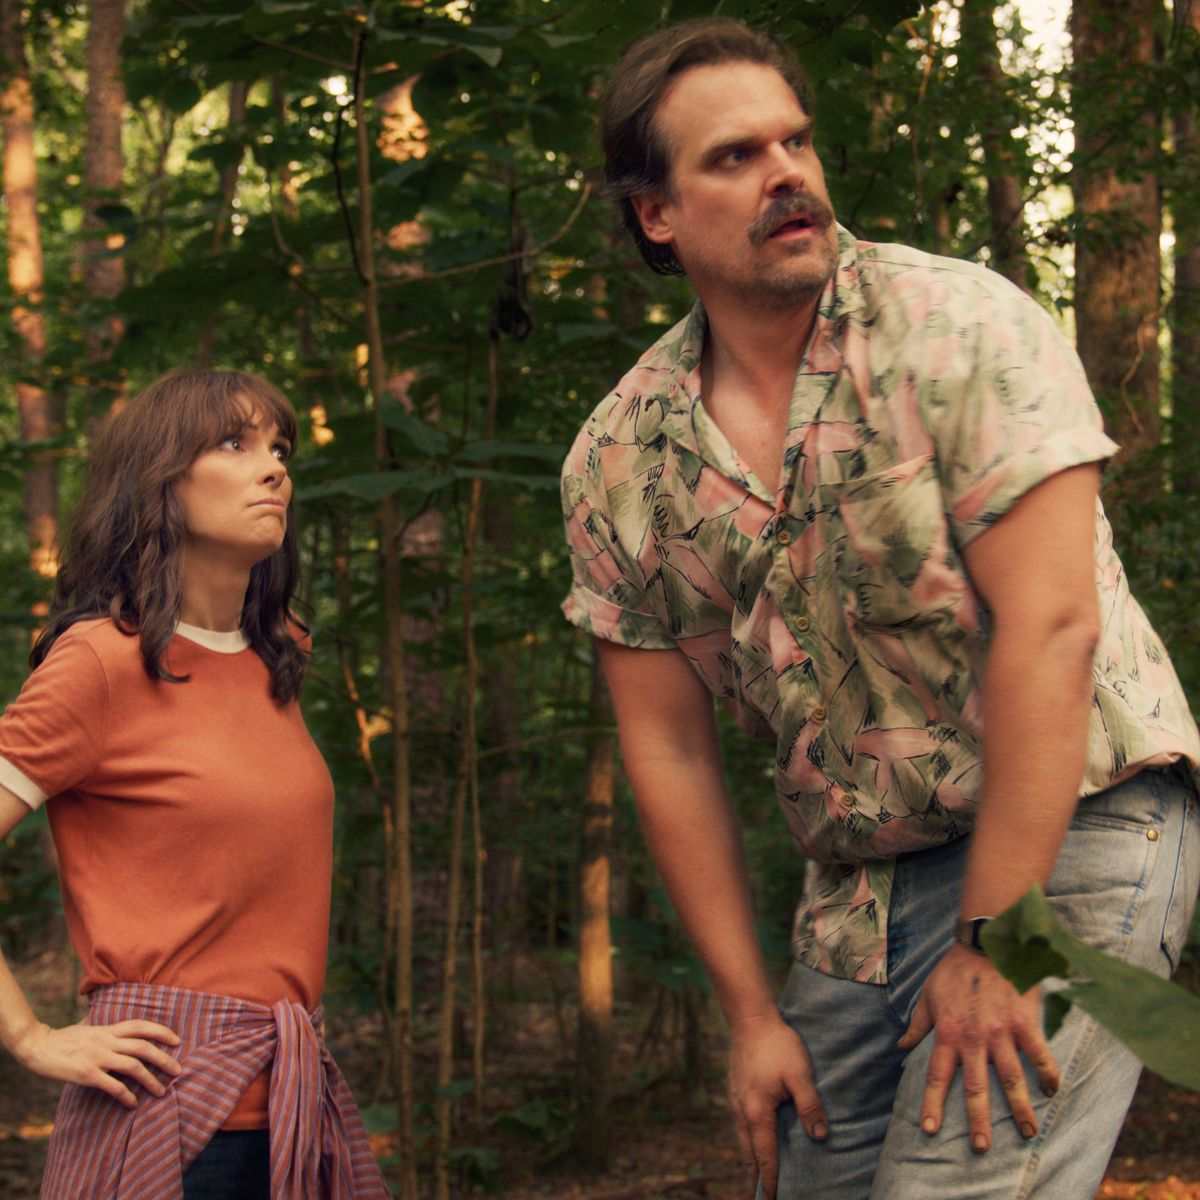 Stranger Things 3: All About Hopper's Floral Shirt